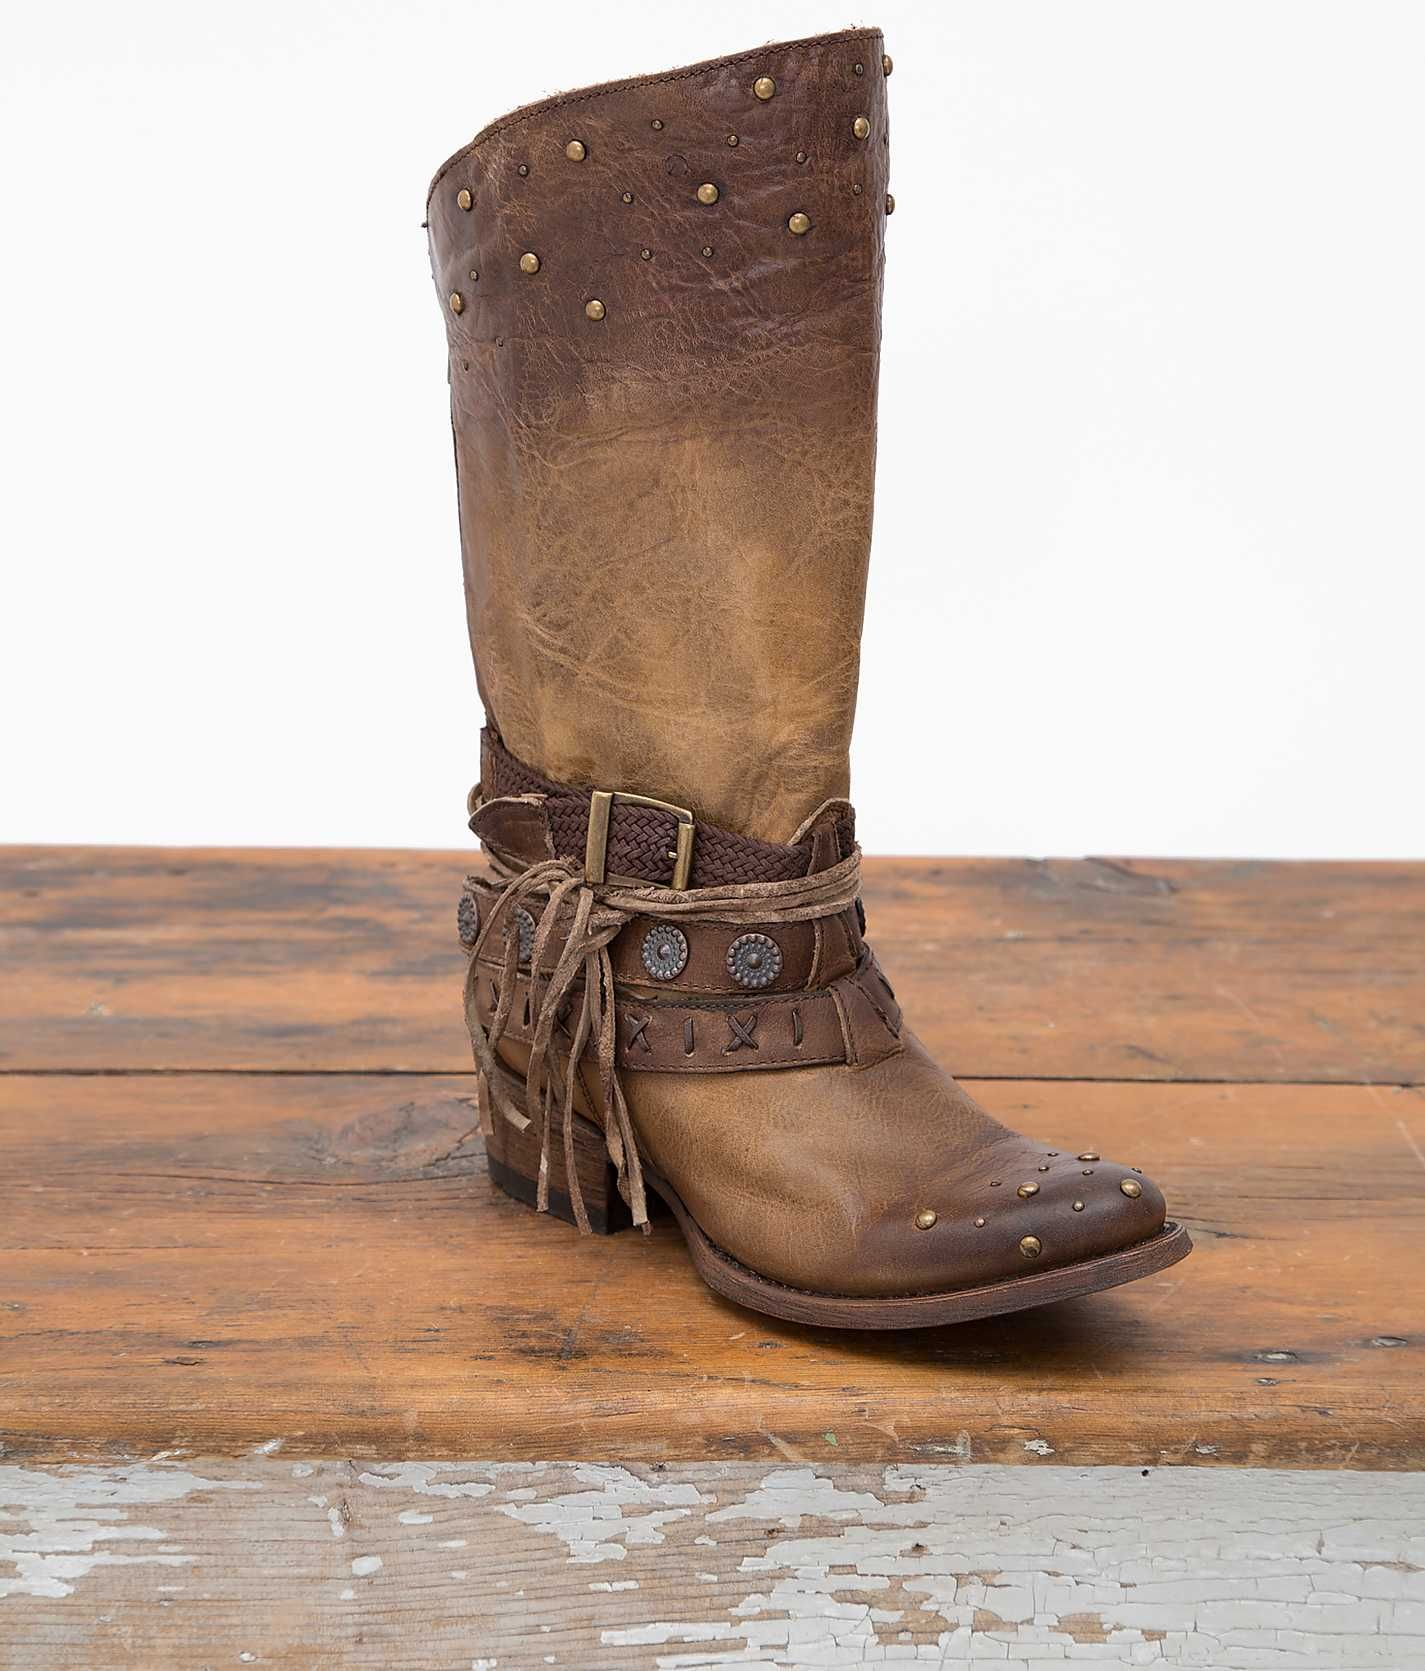 c5fe95c0ab0 Indie Spirit by Corral Rio Belle Riding Boot - Women's Shoes ...